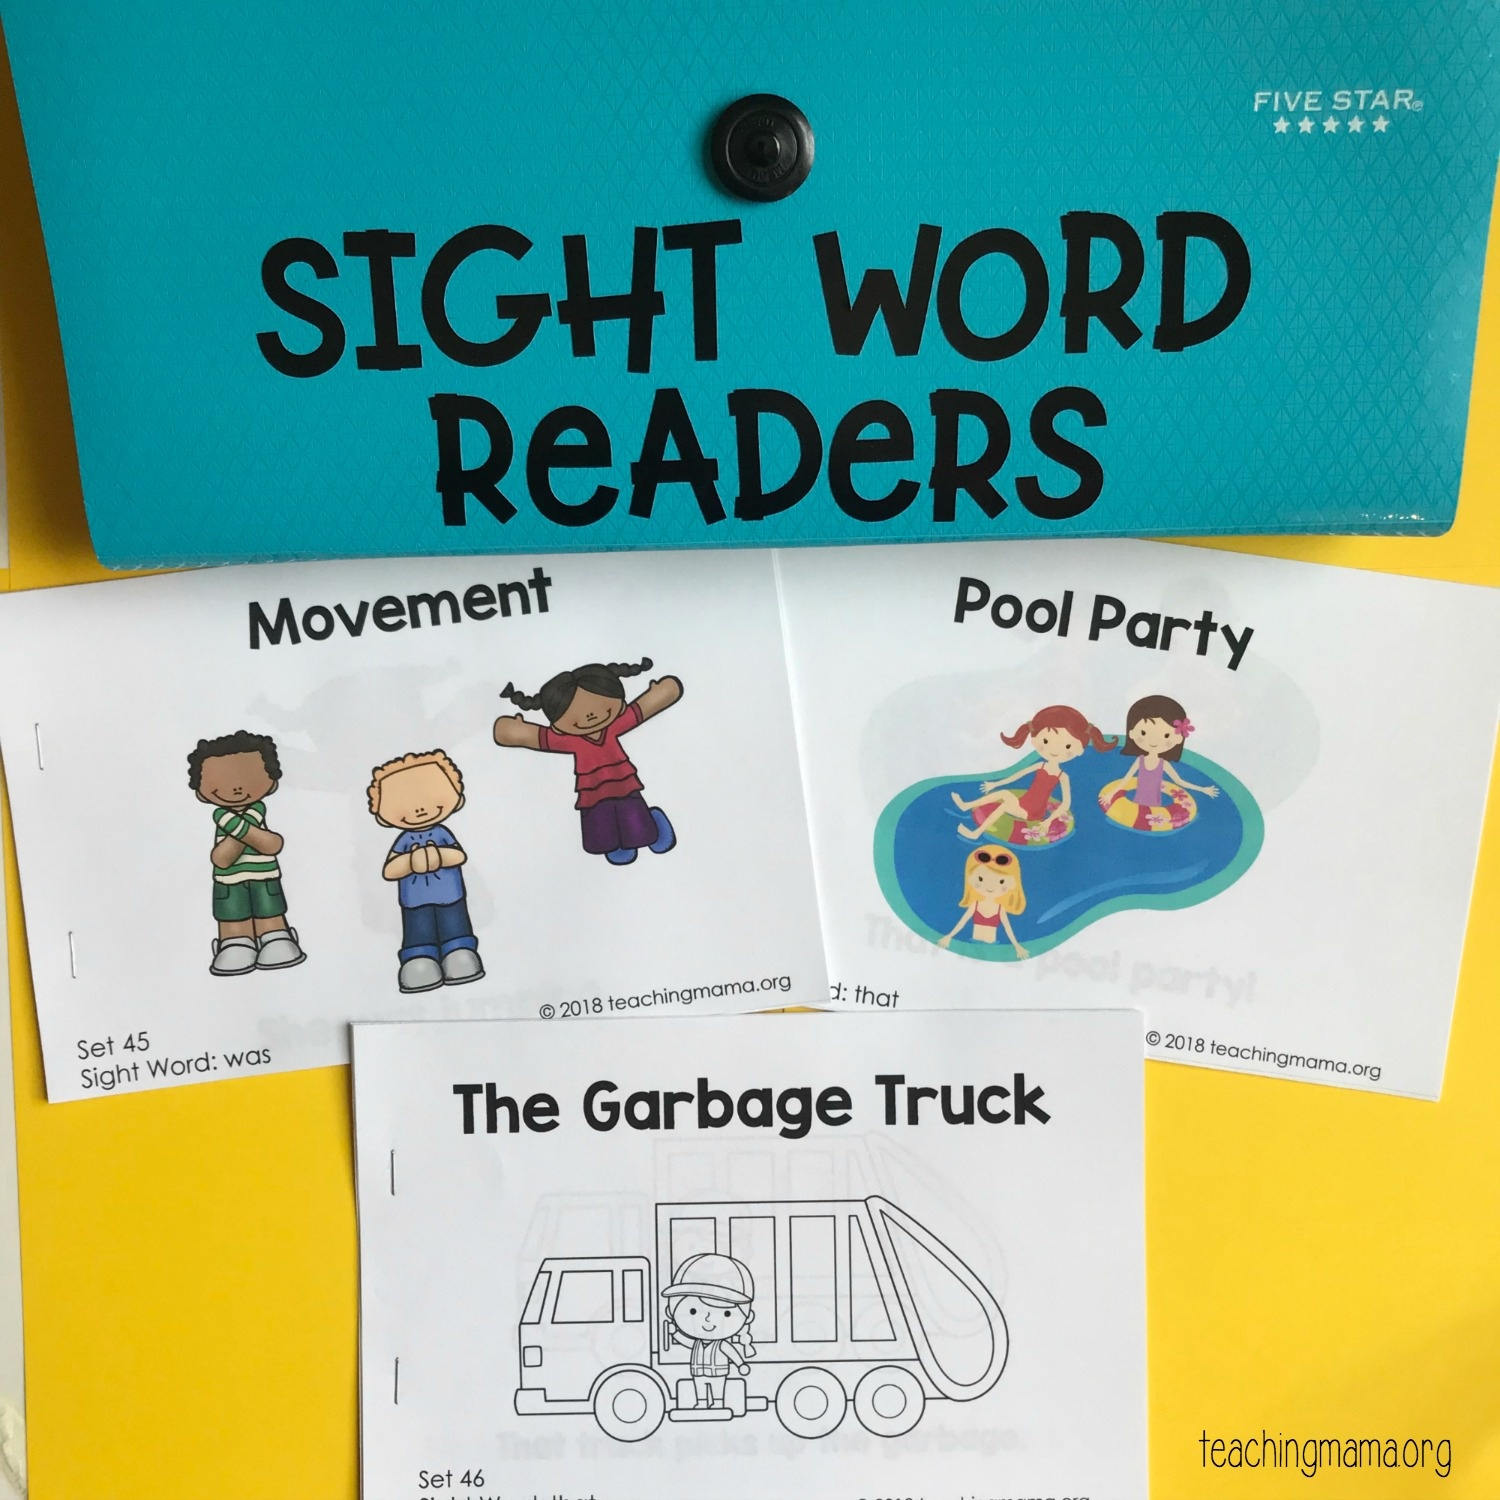 Sight Word Readers - Free Printable Decodable Books For Kindergarten